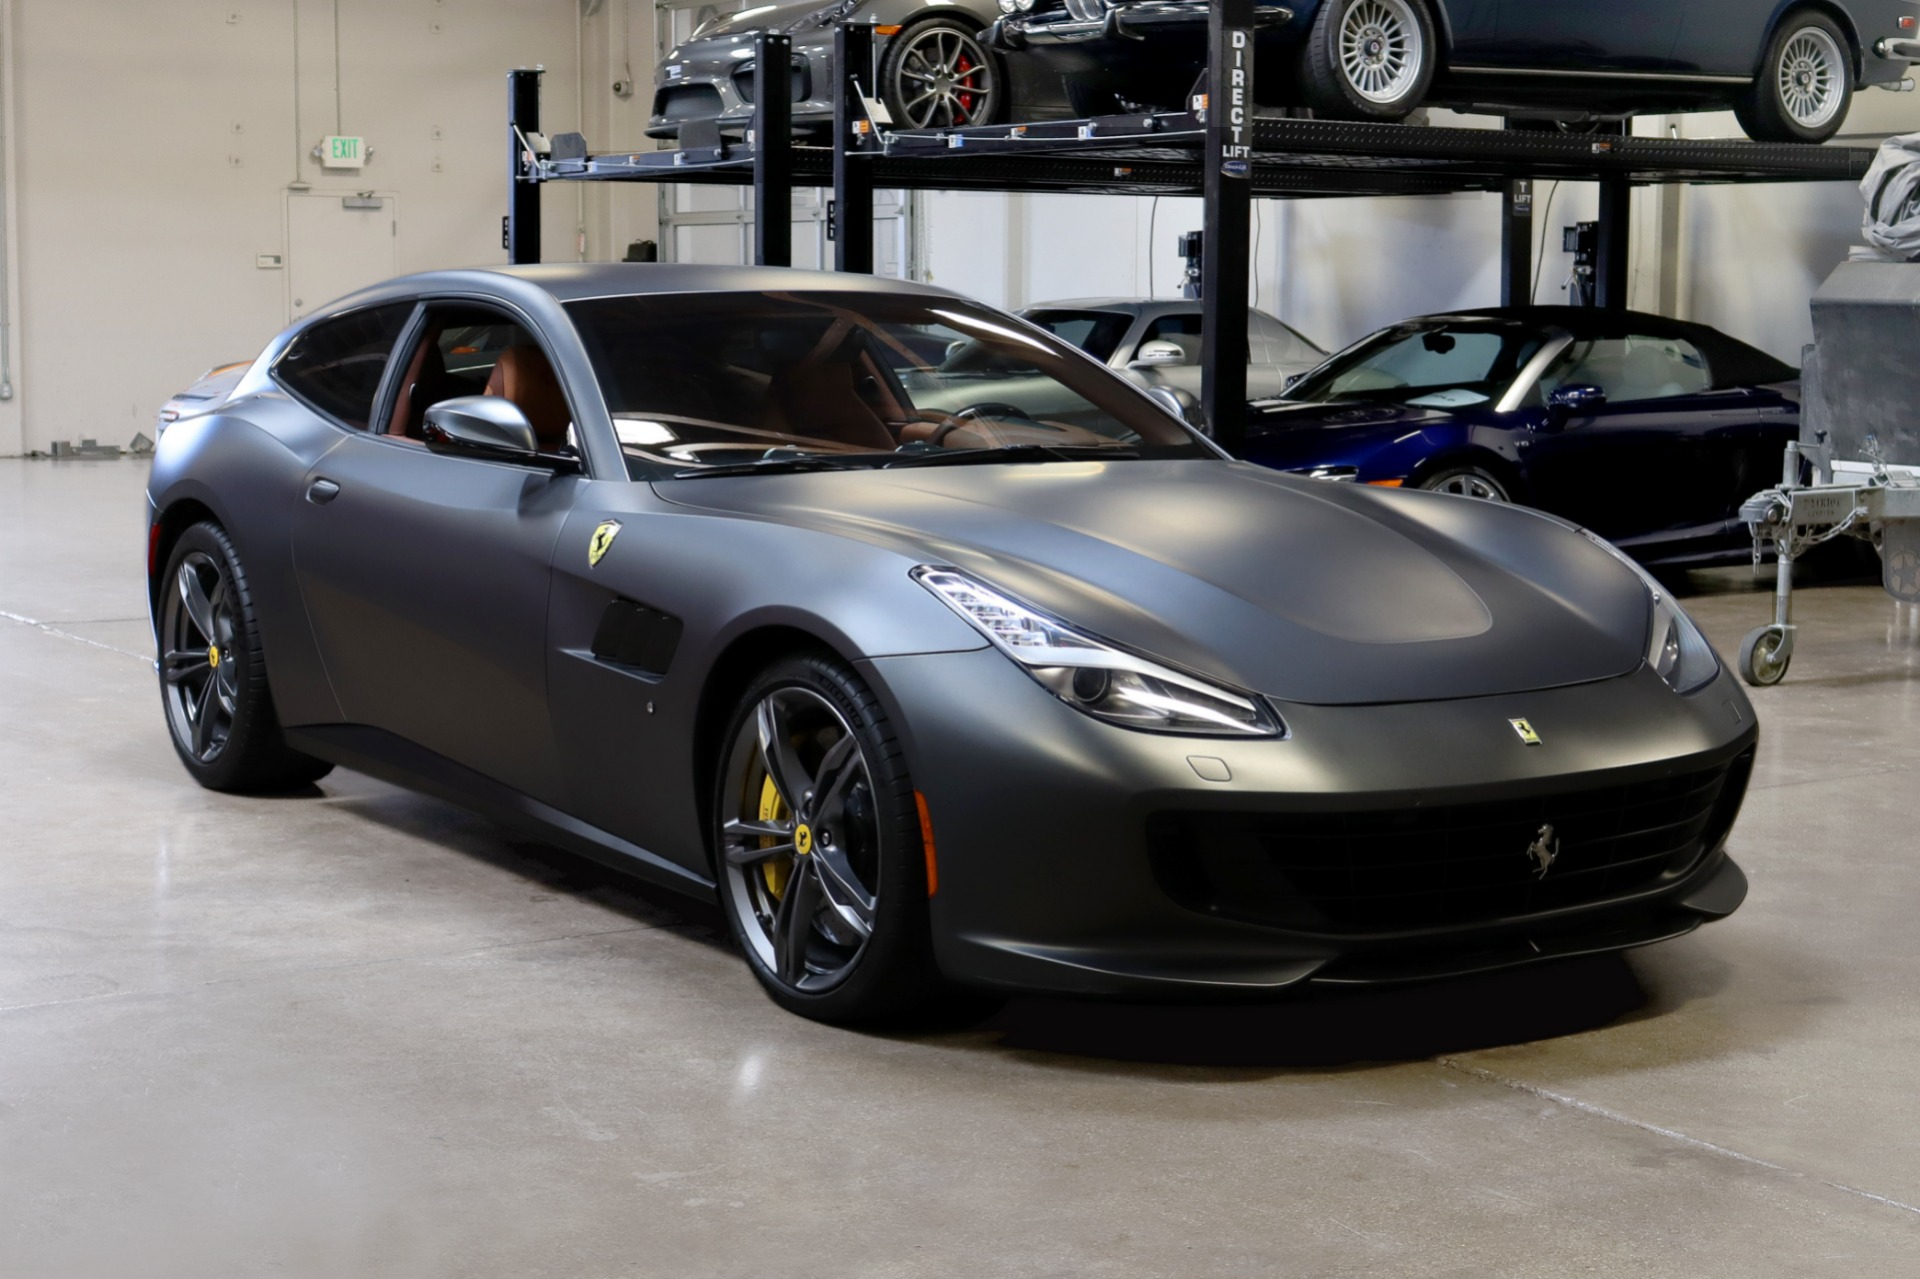 Used 2019 Ferrari GTC4Lusso for sale $259,995 at San Francisco Sports Cars in San Carlos CA 94070 1